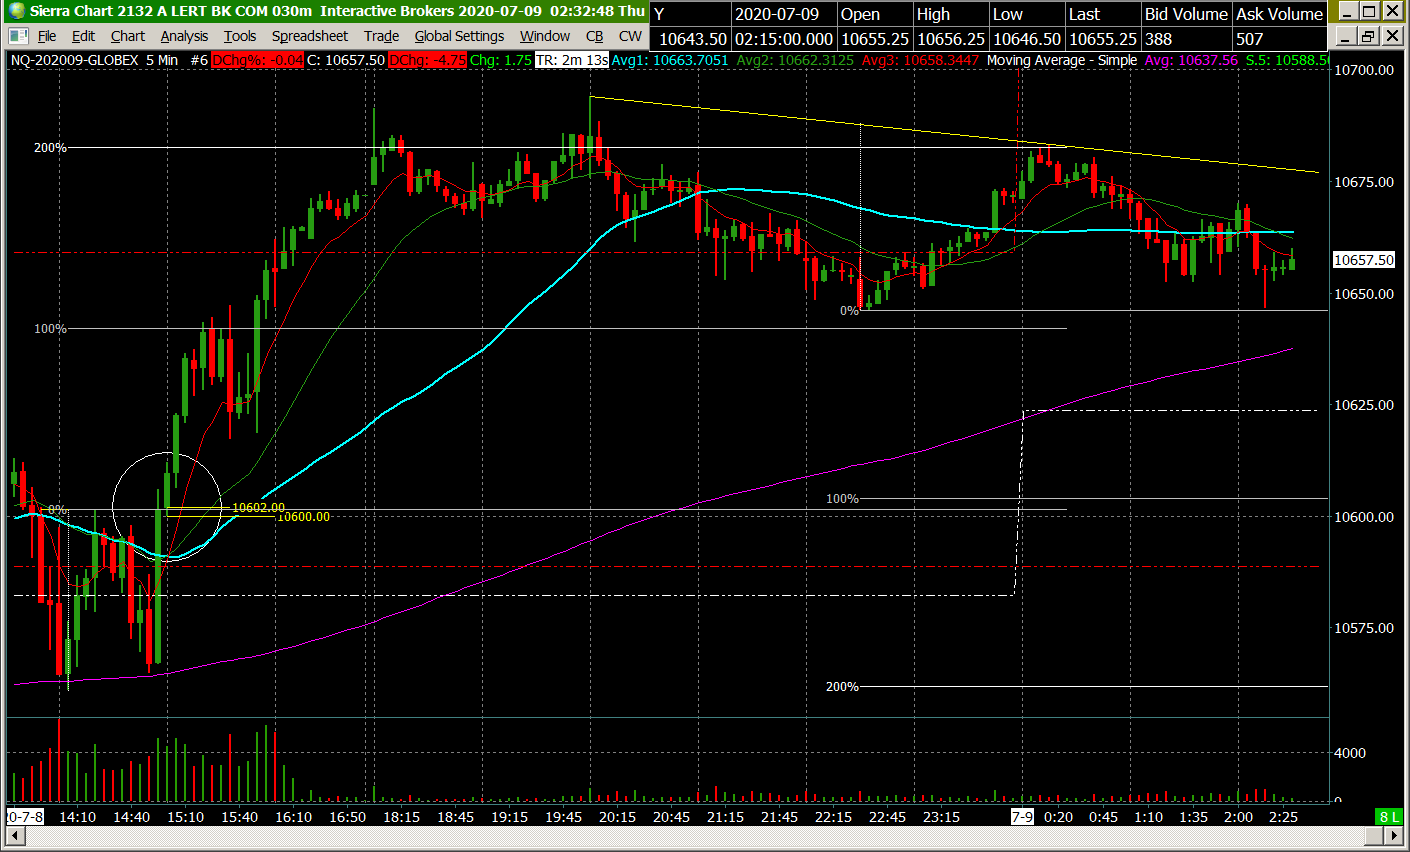 Double Top 9995 nq 5m.png